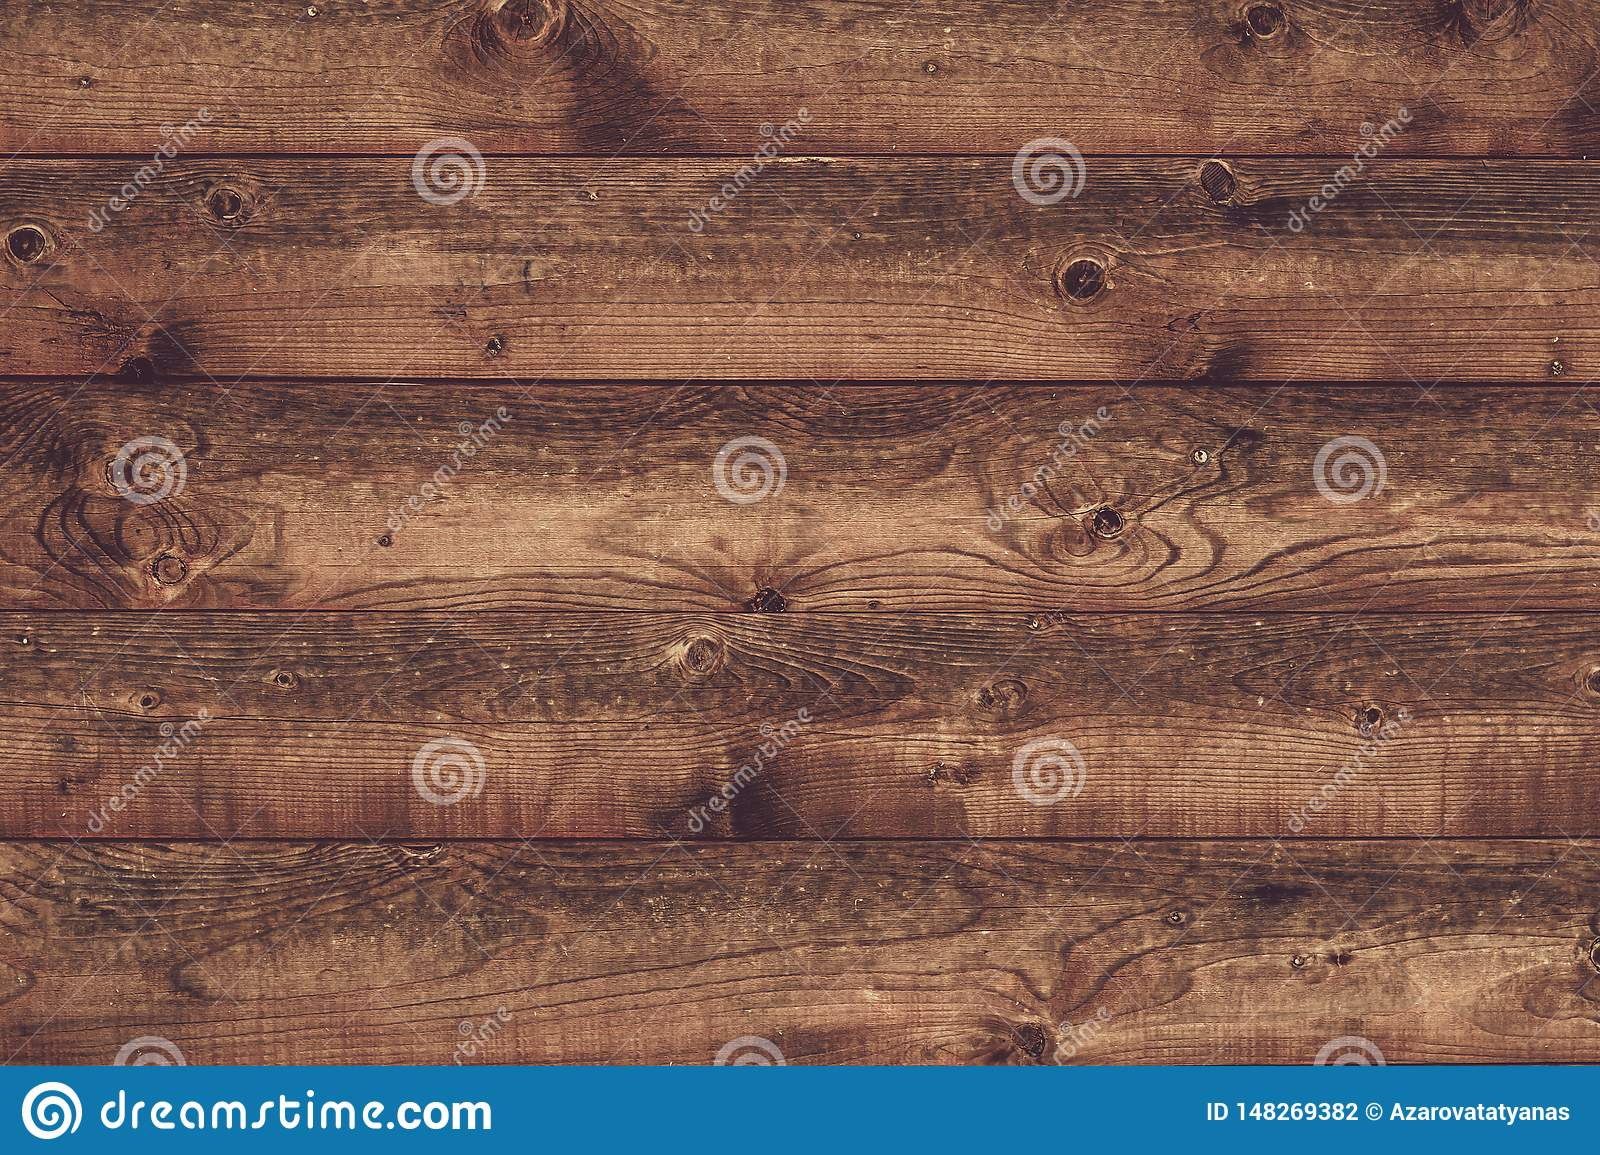 Old wood texture. Wood light weathered rustic oak. Vintage rustic pattern background. Grunge dirty wood boards. Light wooden table